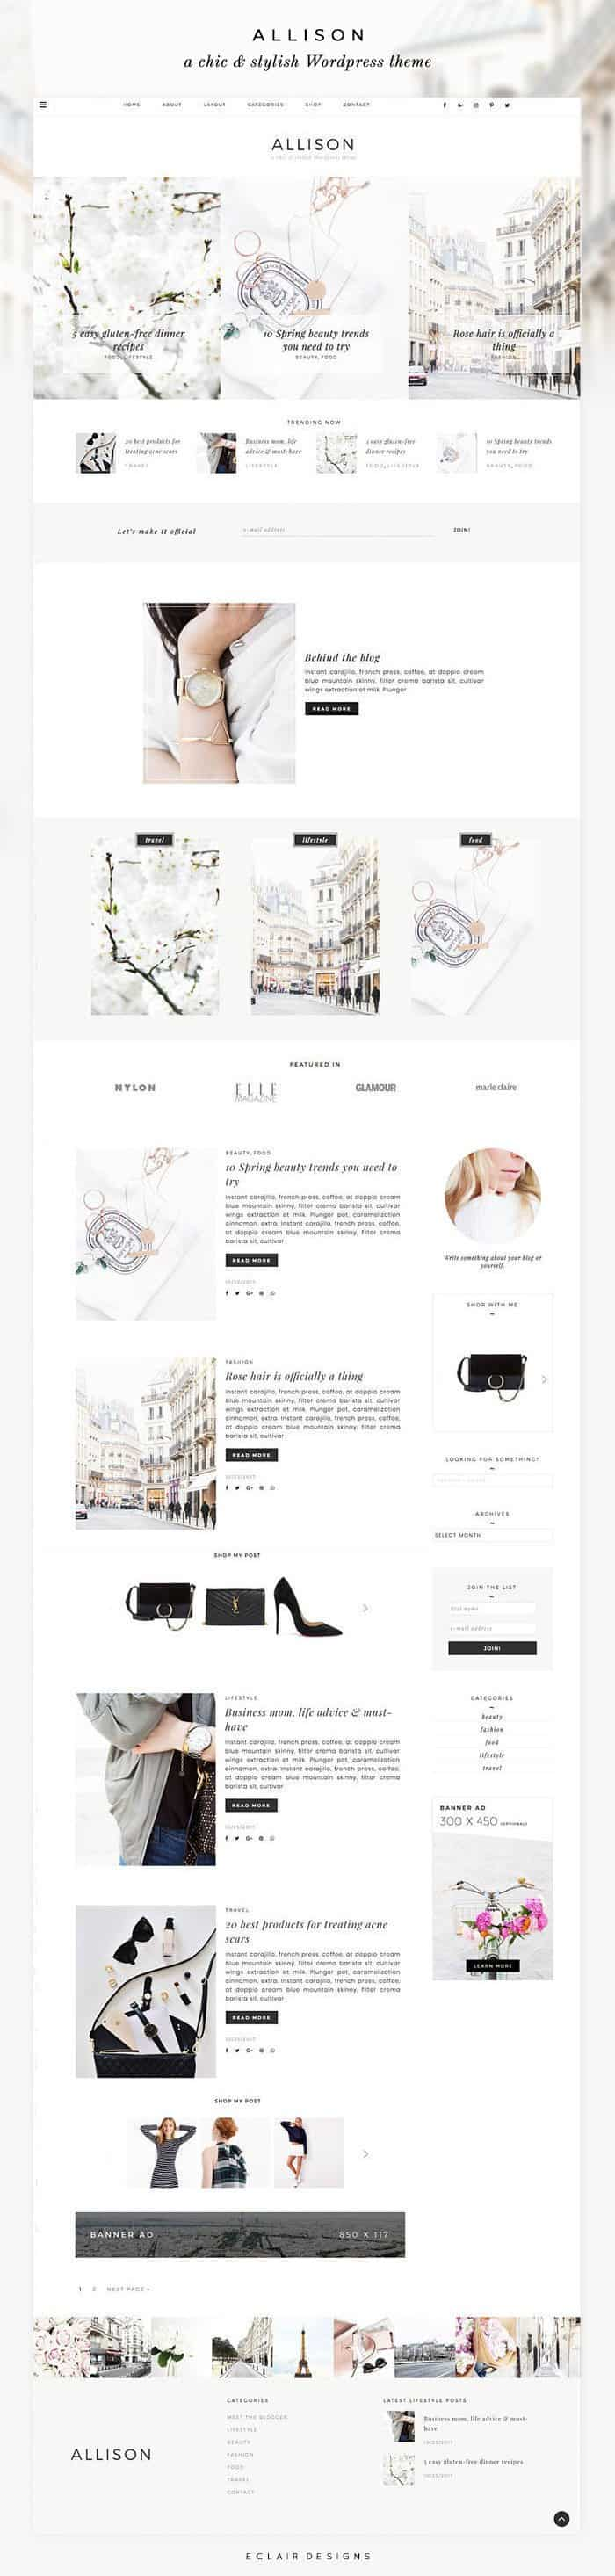 Feminine WordPress Theme - Allison